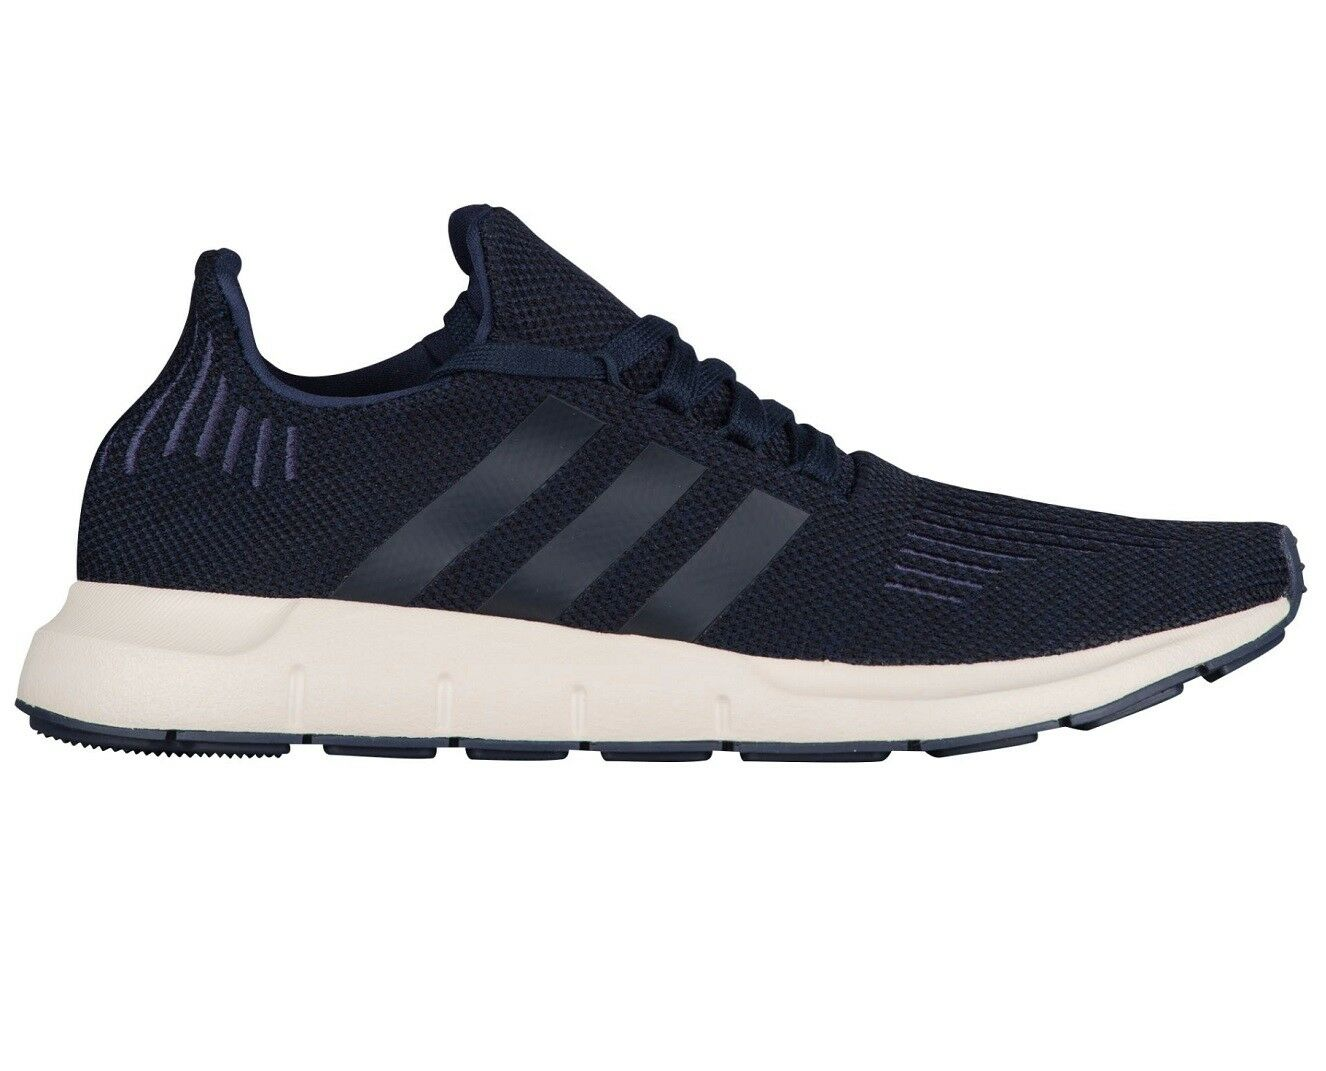 Adidas Swift Run Mens AC7165 Navy Trace Blue Knit Running Shoes Size 12